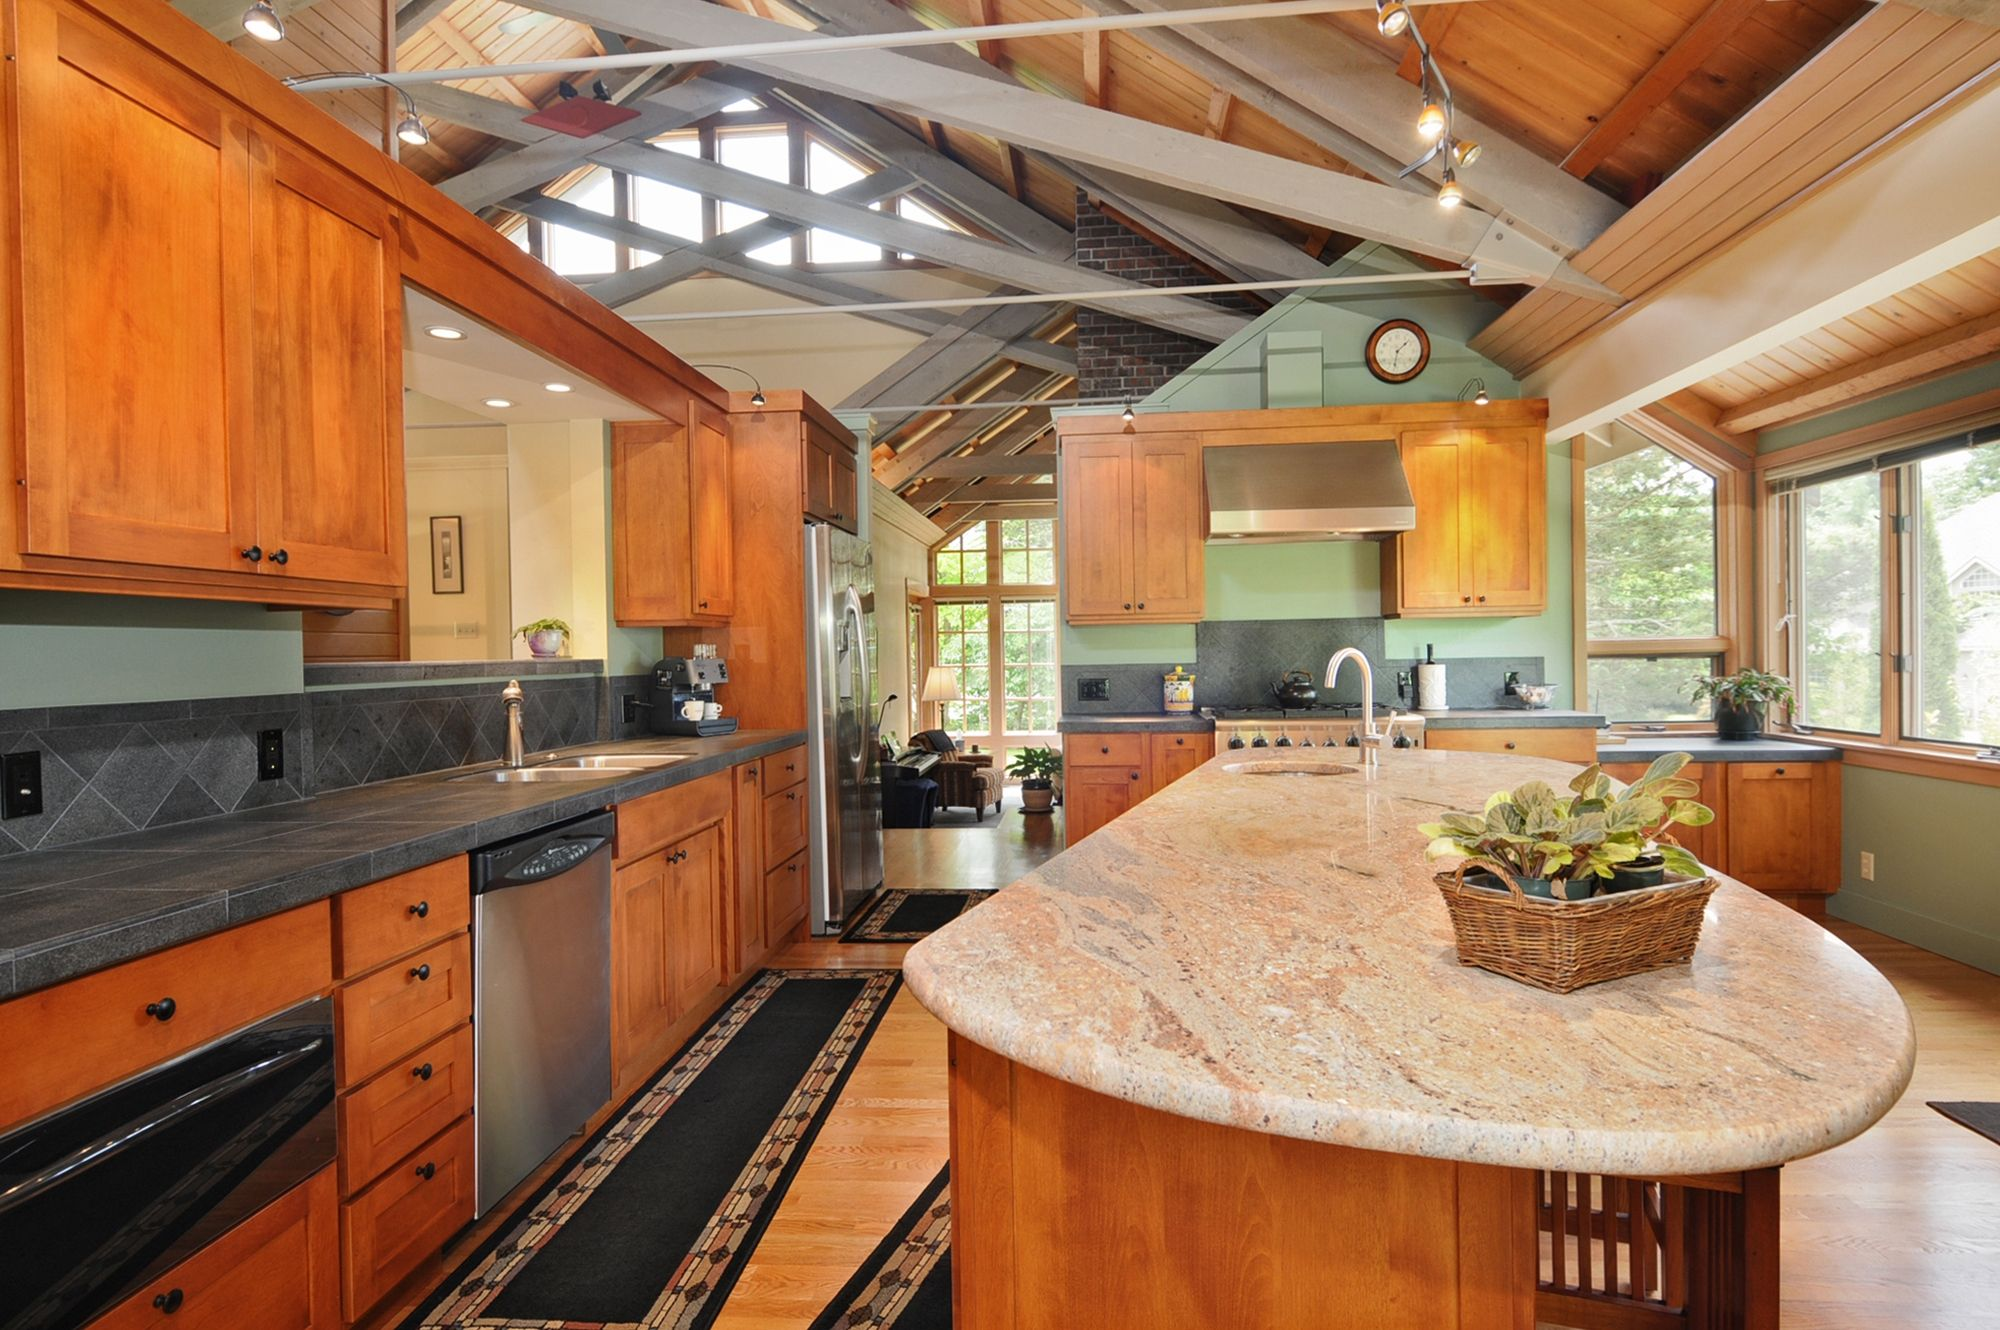 Best Kitchen Gallery: Pacific Northwest Design Is It A Bungalow Craftsman Or A Pacific of Pacific Northwest Style Homes on rachelxblog.com